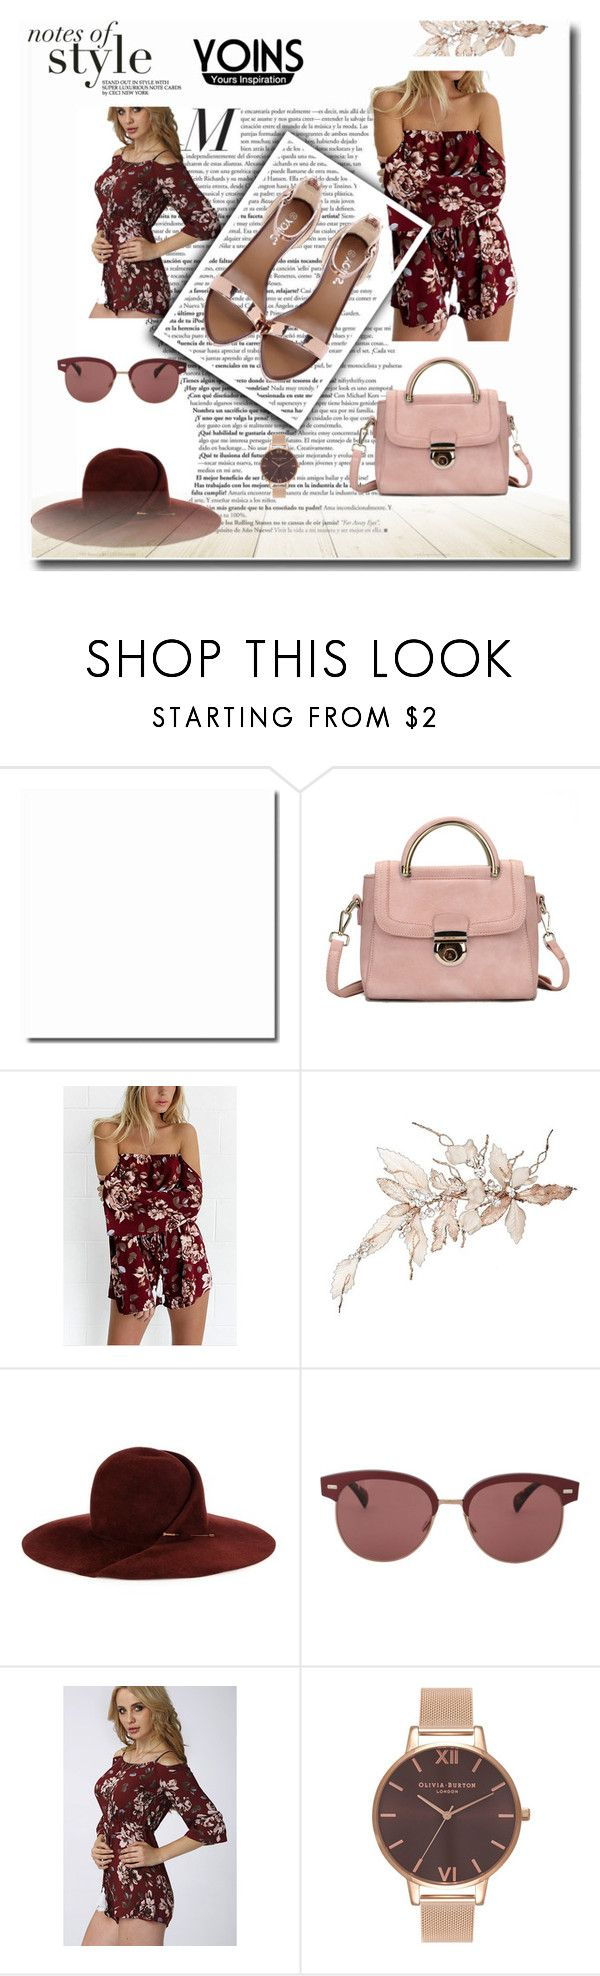 """""""Off shoulder Long Sleeve Playsuit"""" by arijanagetos55 ❤ liked on Polyvore featuring Eugenia Kim, Oliver Peoples, Olivia Burton, yoins and loveyoins"""